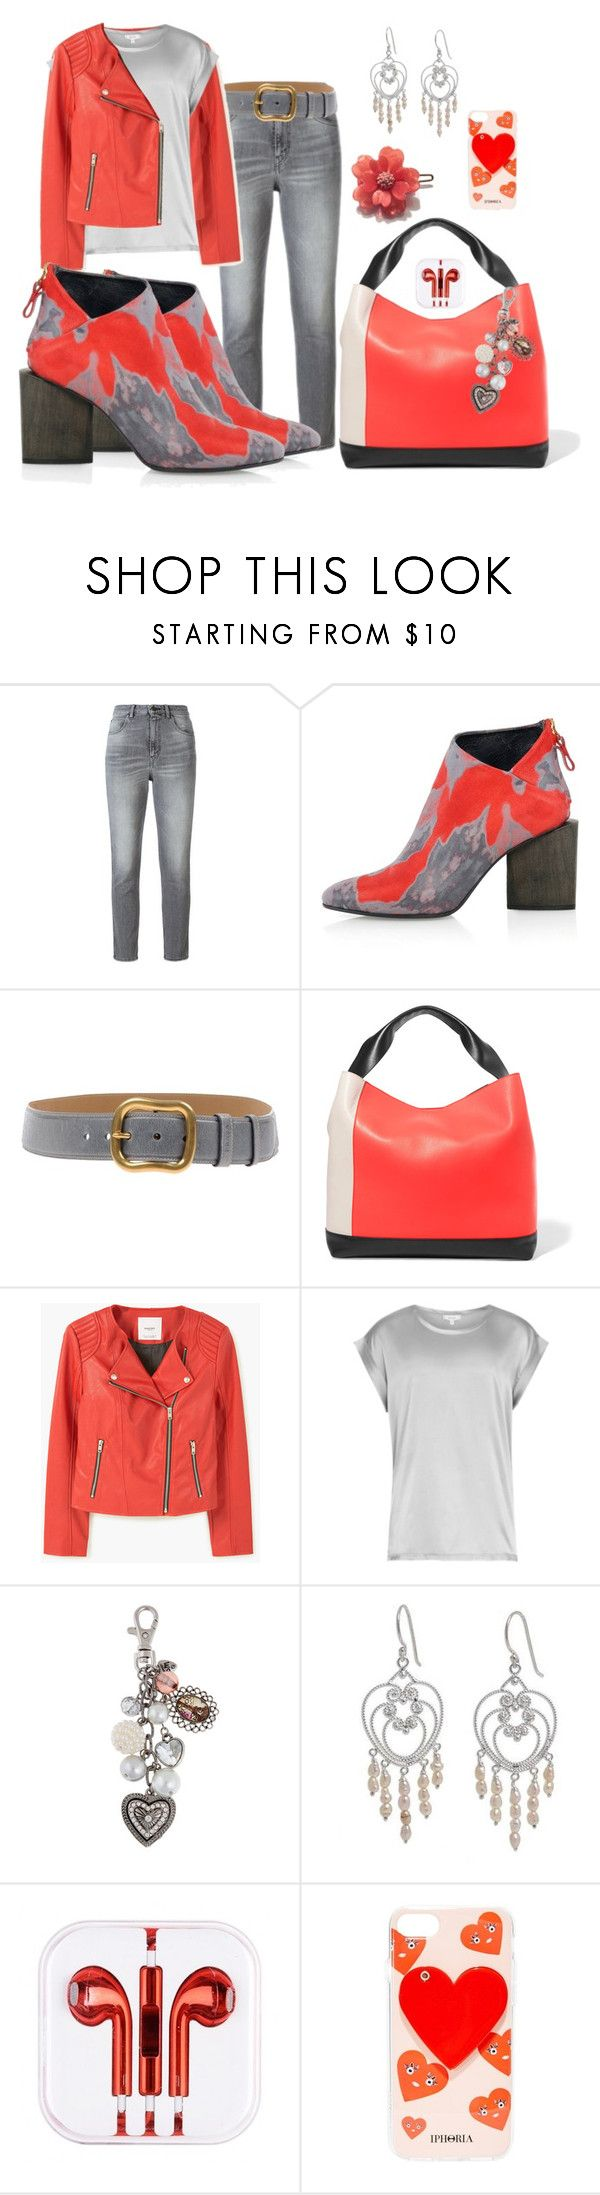 """""""I ❤️ ankle boots. . ."""" by kelli-bailey-ouimet ❤ liked on Polyvore featuring Golden Goose, Kim Kwang, Prada, Marni, MANGO, Reiss, Sandra Magsamen, NOVICA and Iphoria"""